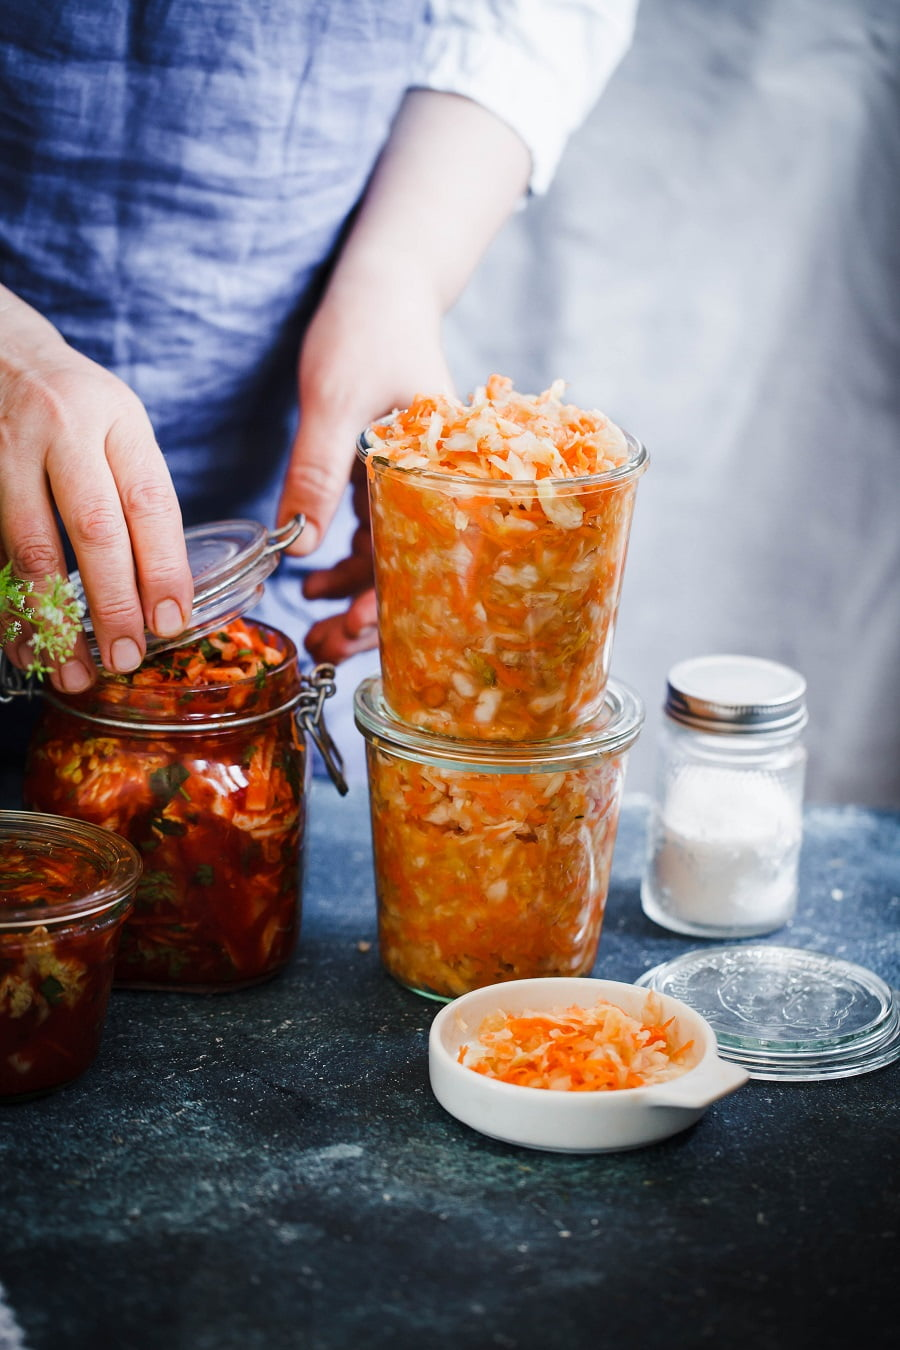 5 Fermented Foods To Eat For Good Gut Health